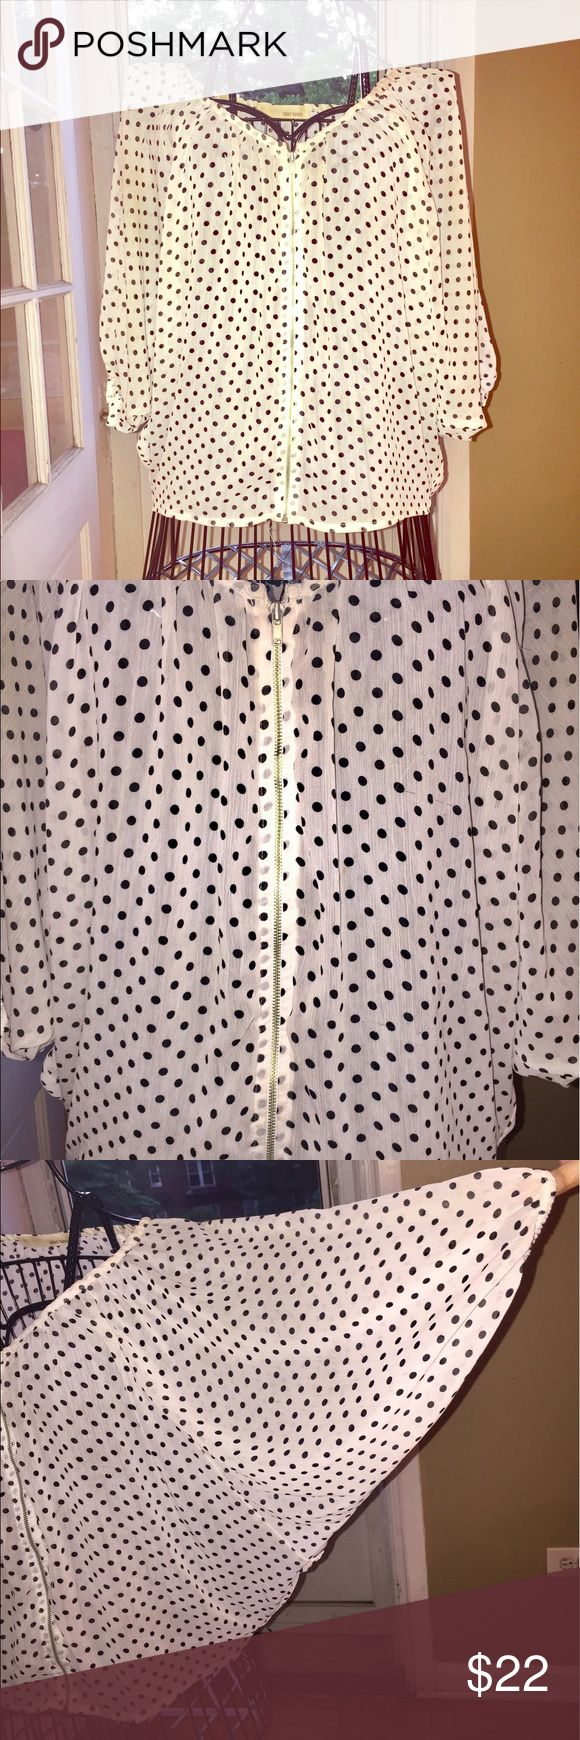 Zip-front polka dot top This top is loose and flowy, non-binding & great for those warm, breezy days & nights.  Shirt features 3/4 batwing sleeves.  The size tag is no longer attached, but I'd say this would fit a size M or L without a problem. Sans Souci Tops